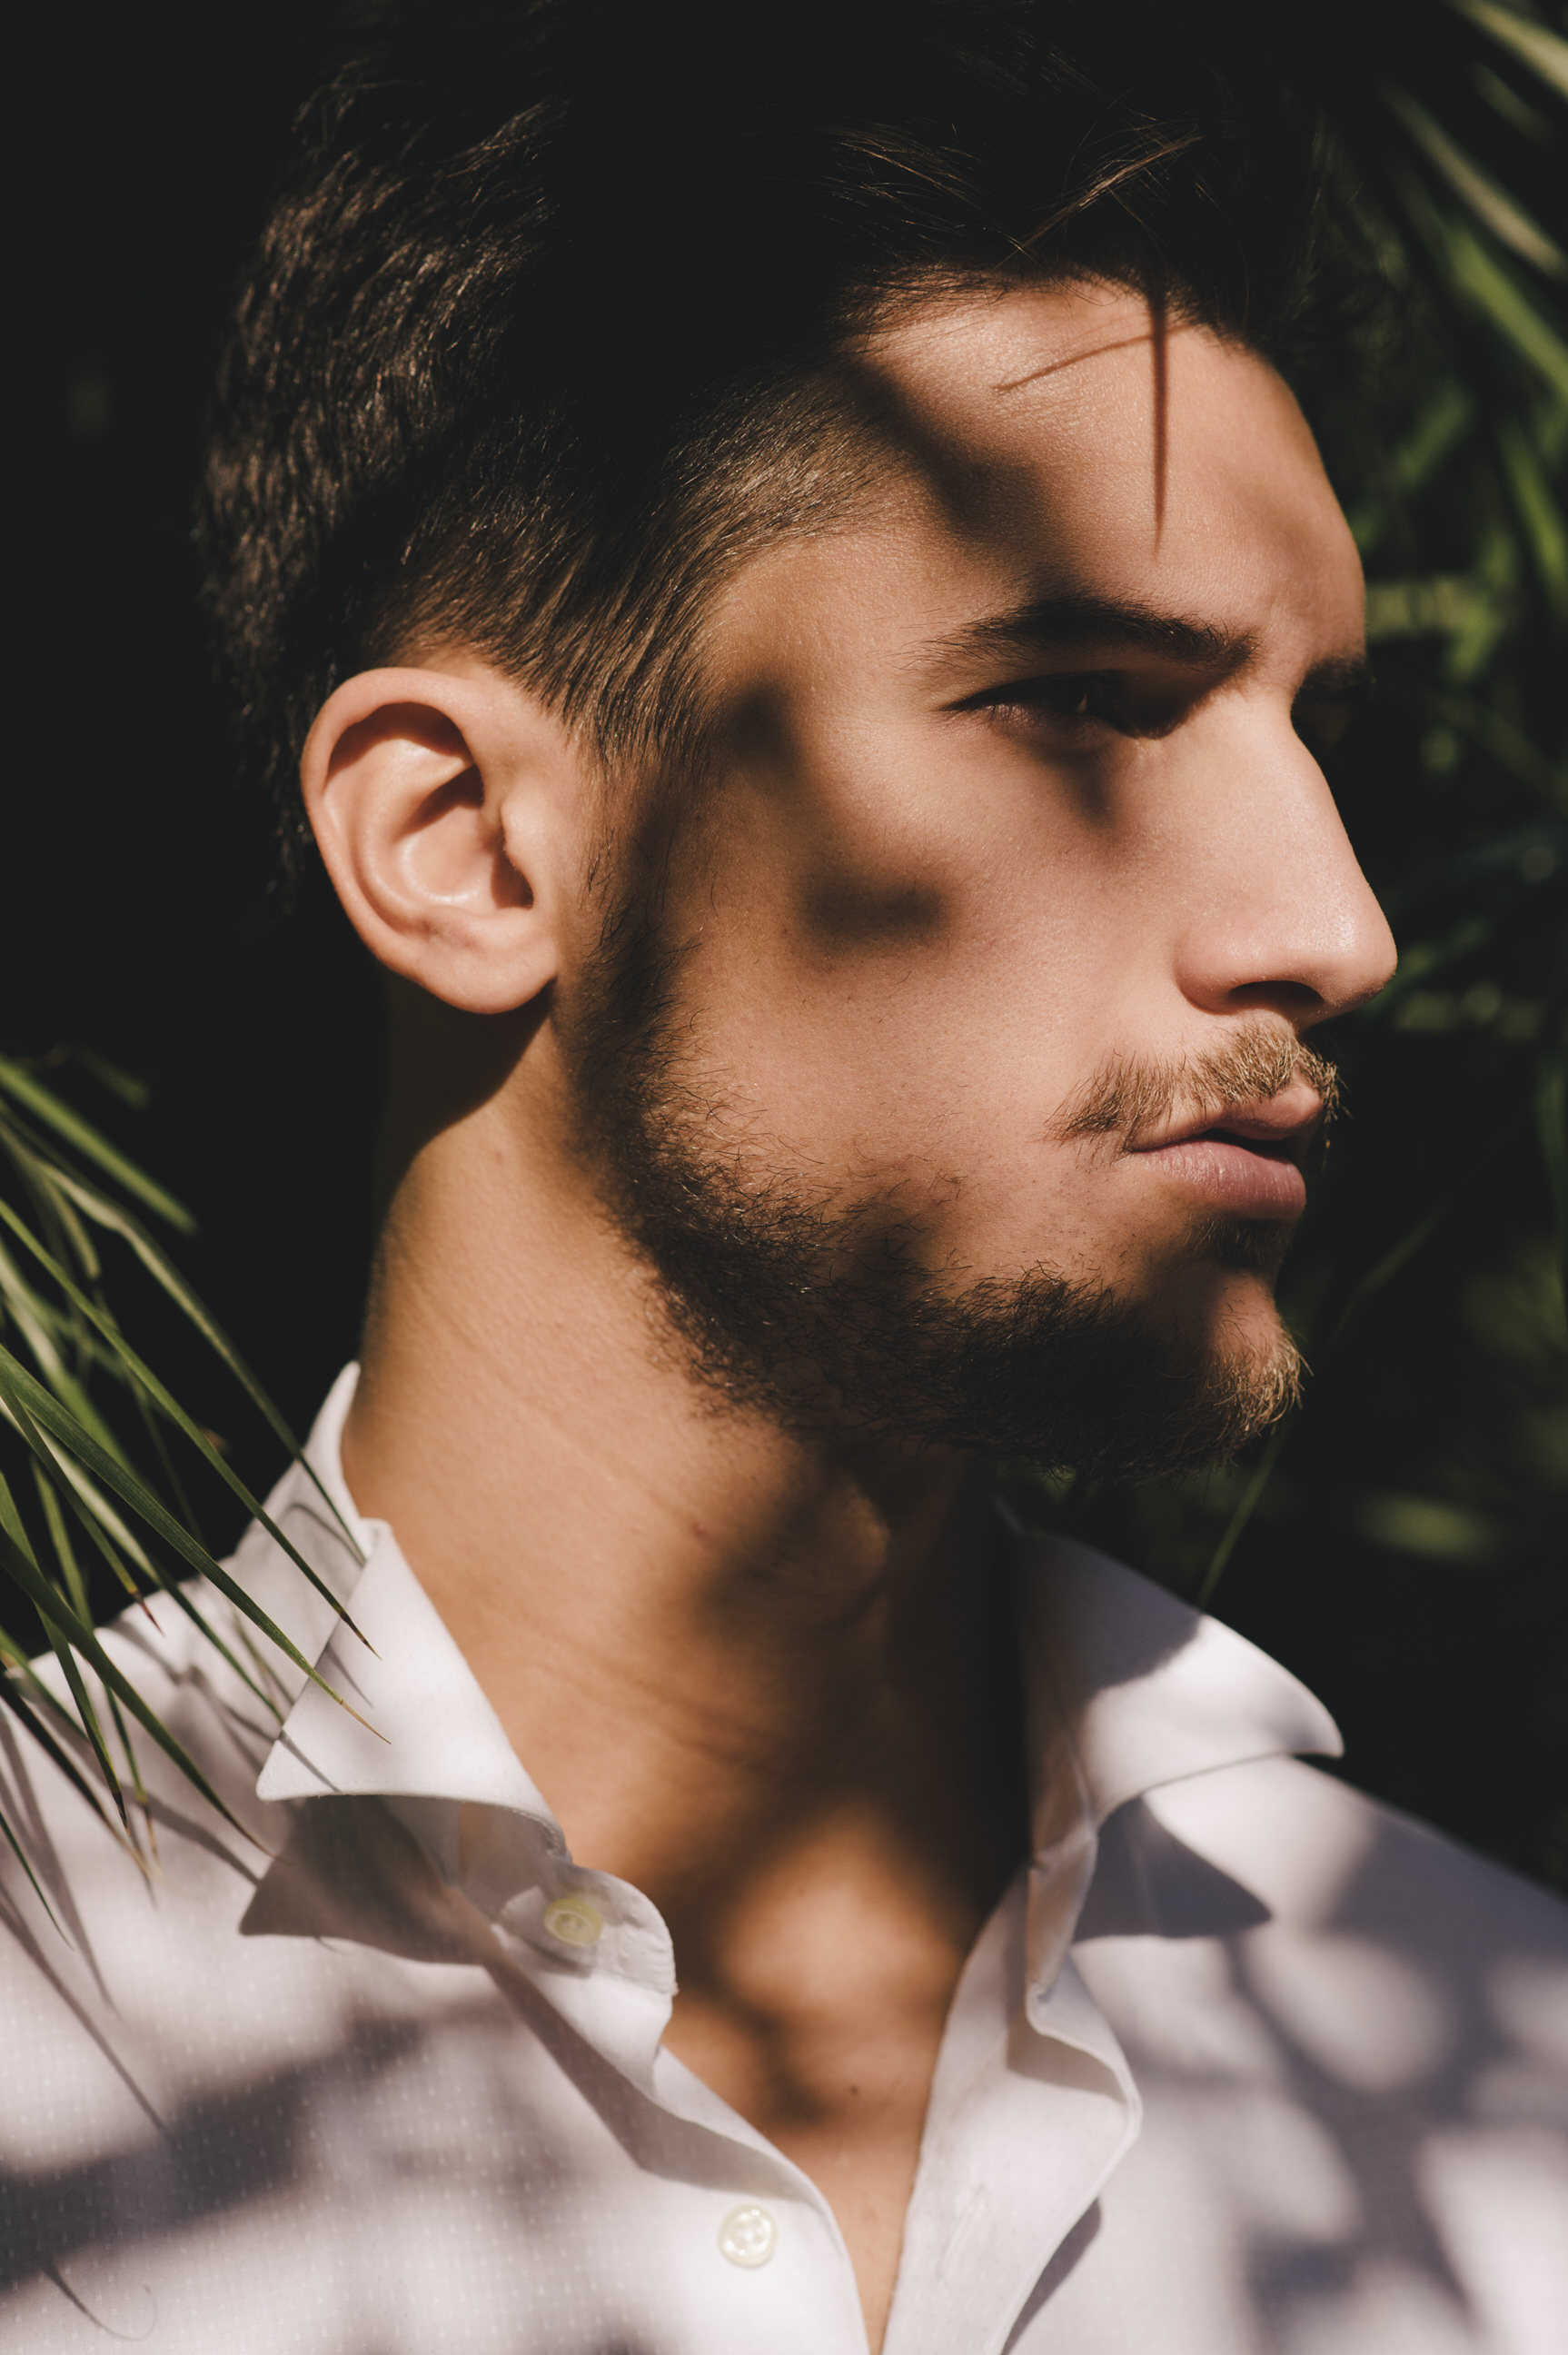 man's face with shadows